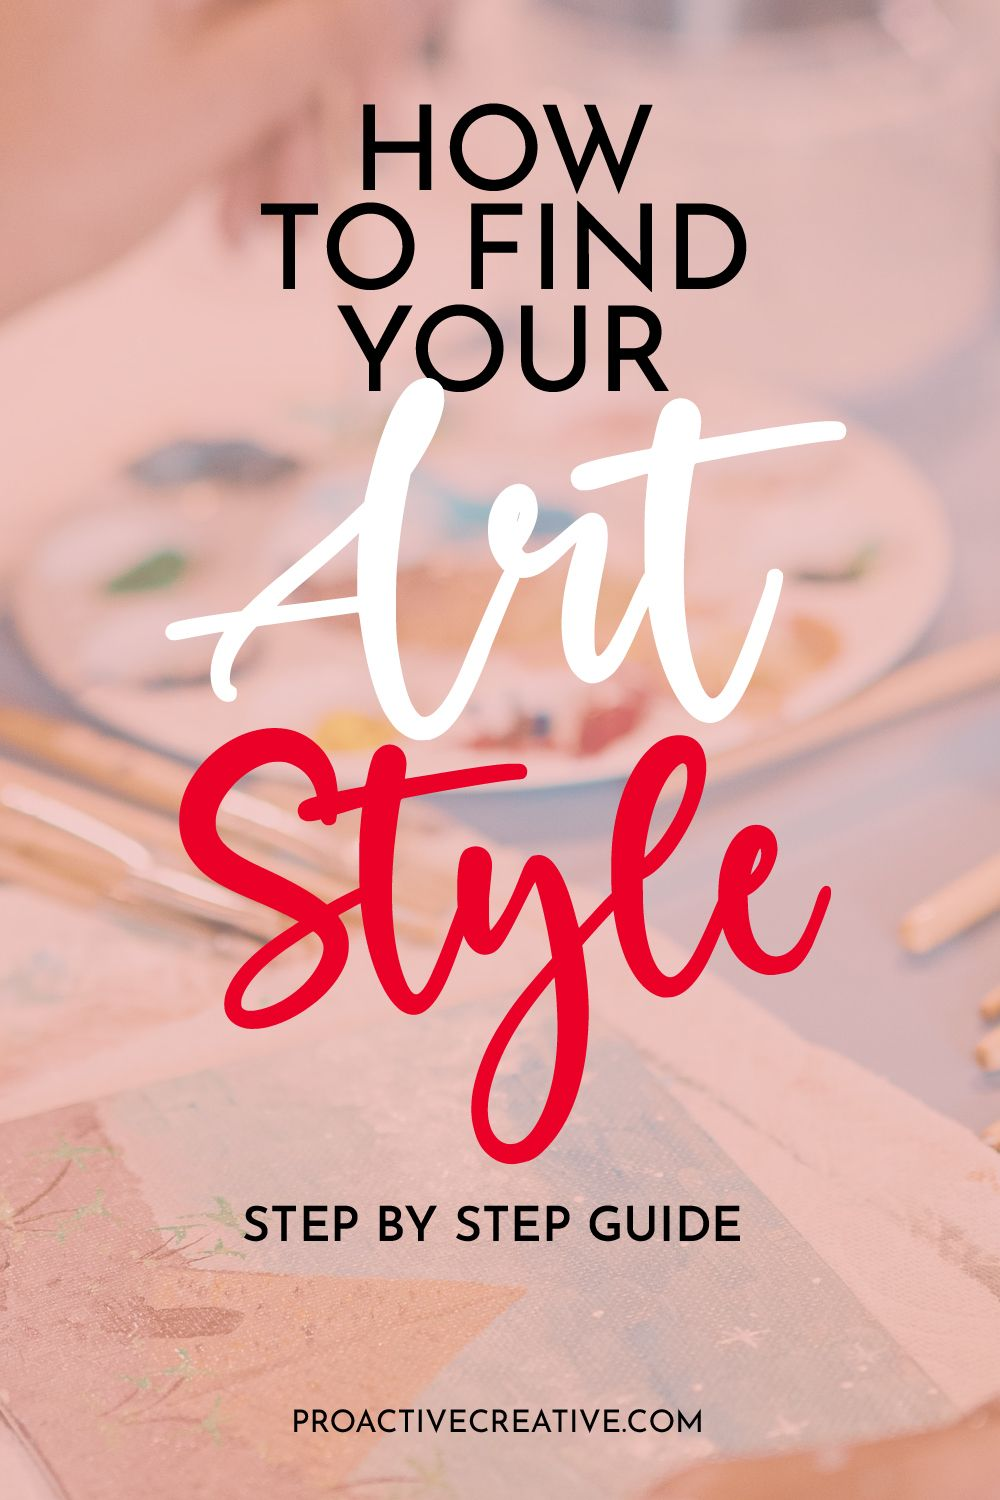 How to Find Your Unique Art Style - 9 Simple & Easy Key Steps